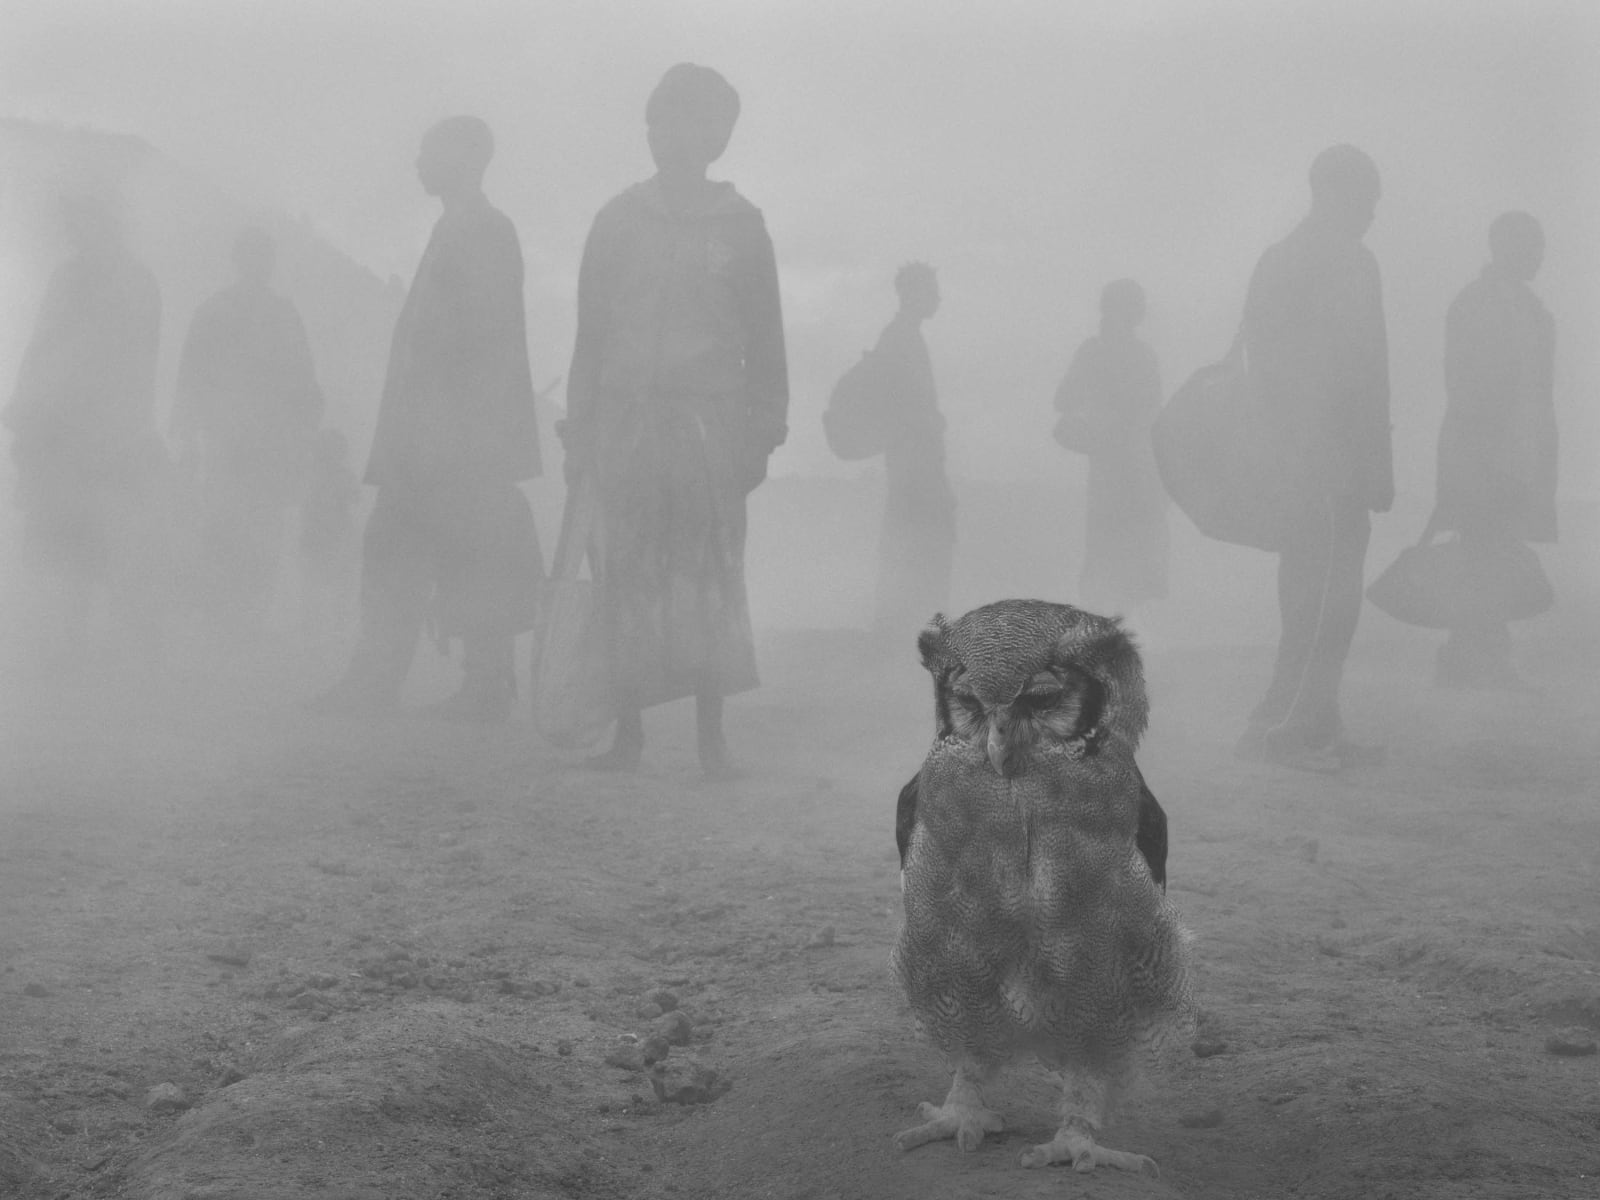 Owl named Harriet with people in fog in background, Zimbabwe, from Dawn May Break series by Nick Brandt